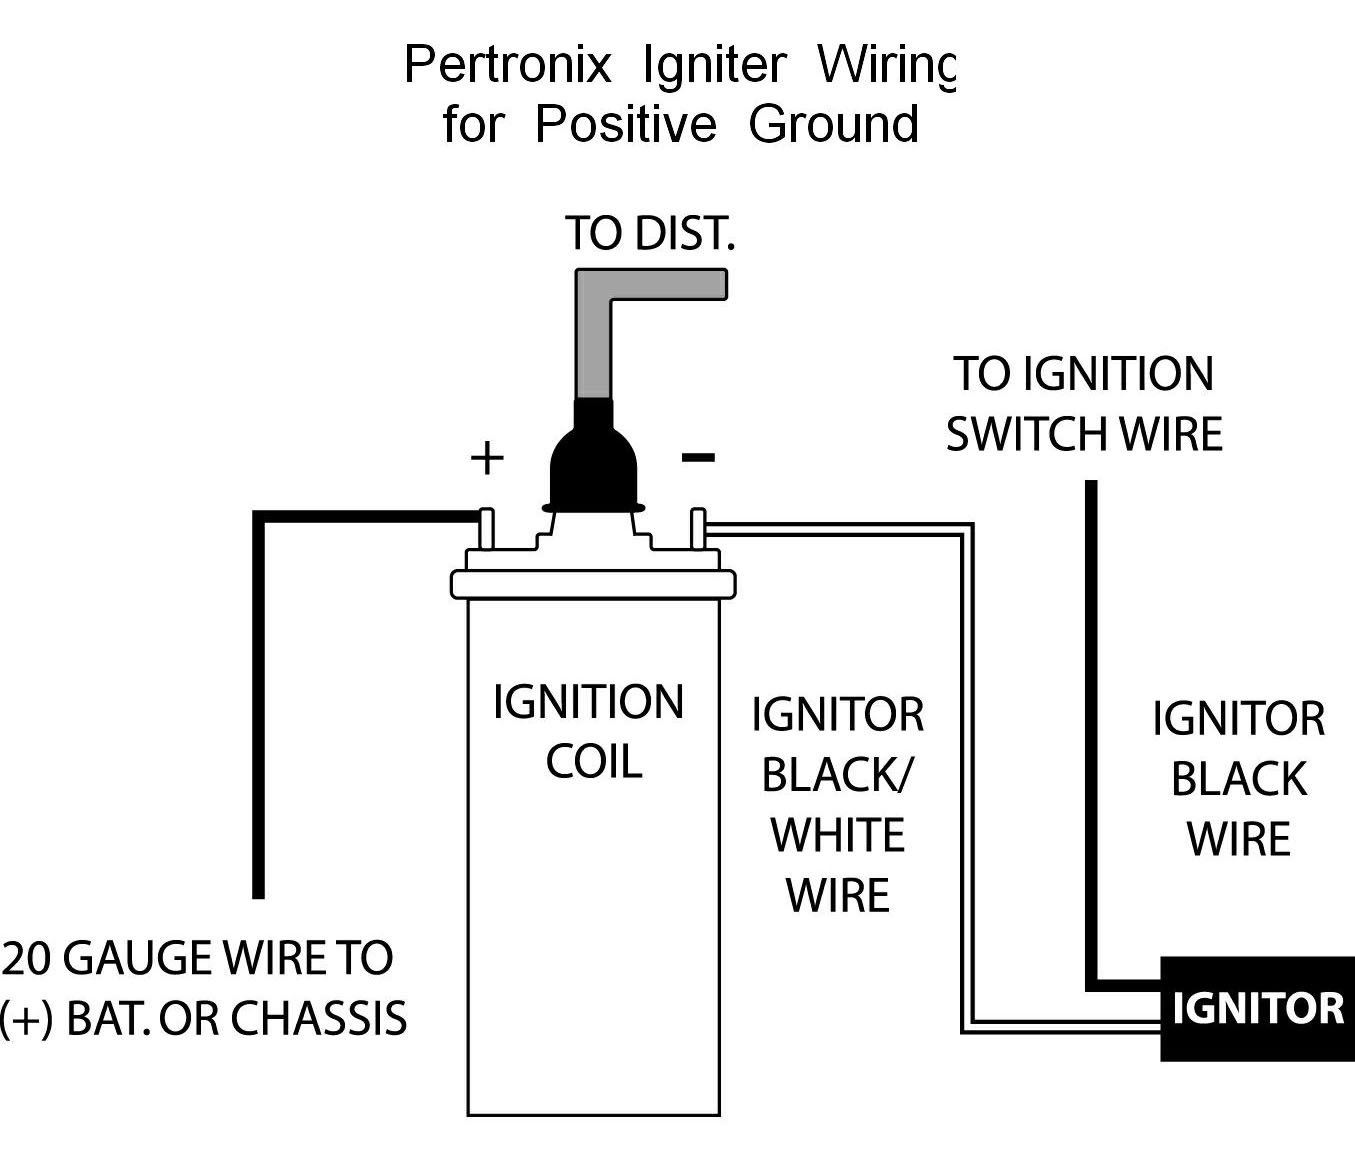 PerPosGndWiring pertronix positive ground wiring wire ignition switch diagram lawn mowers at couponss.co